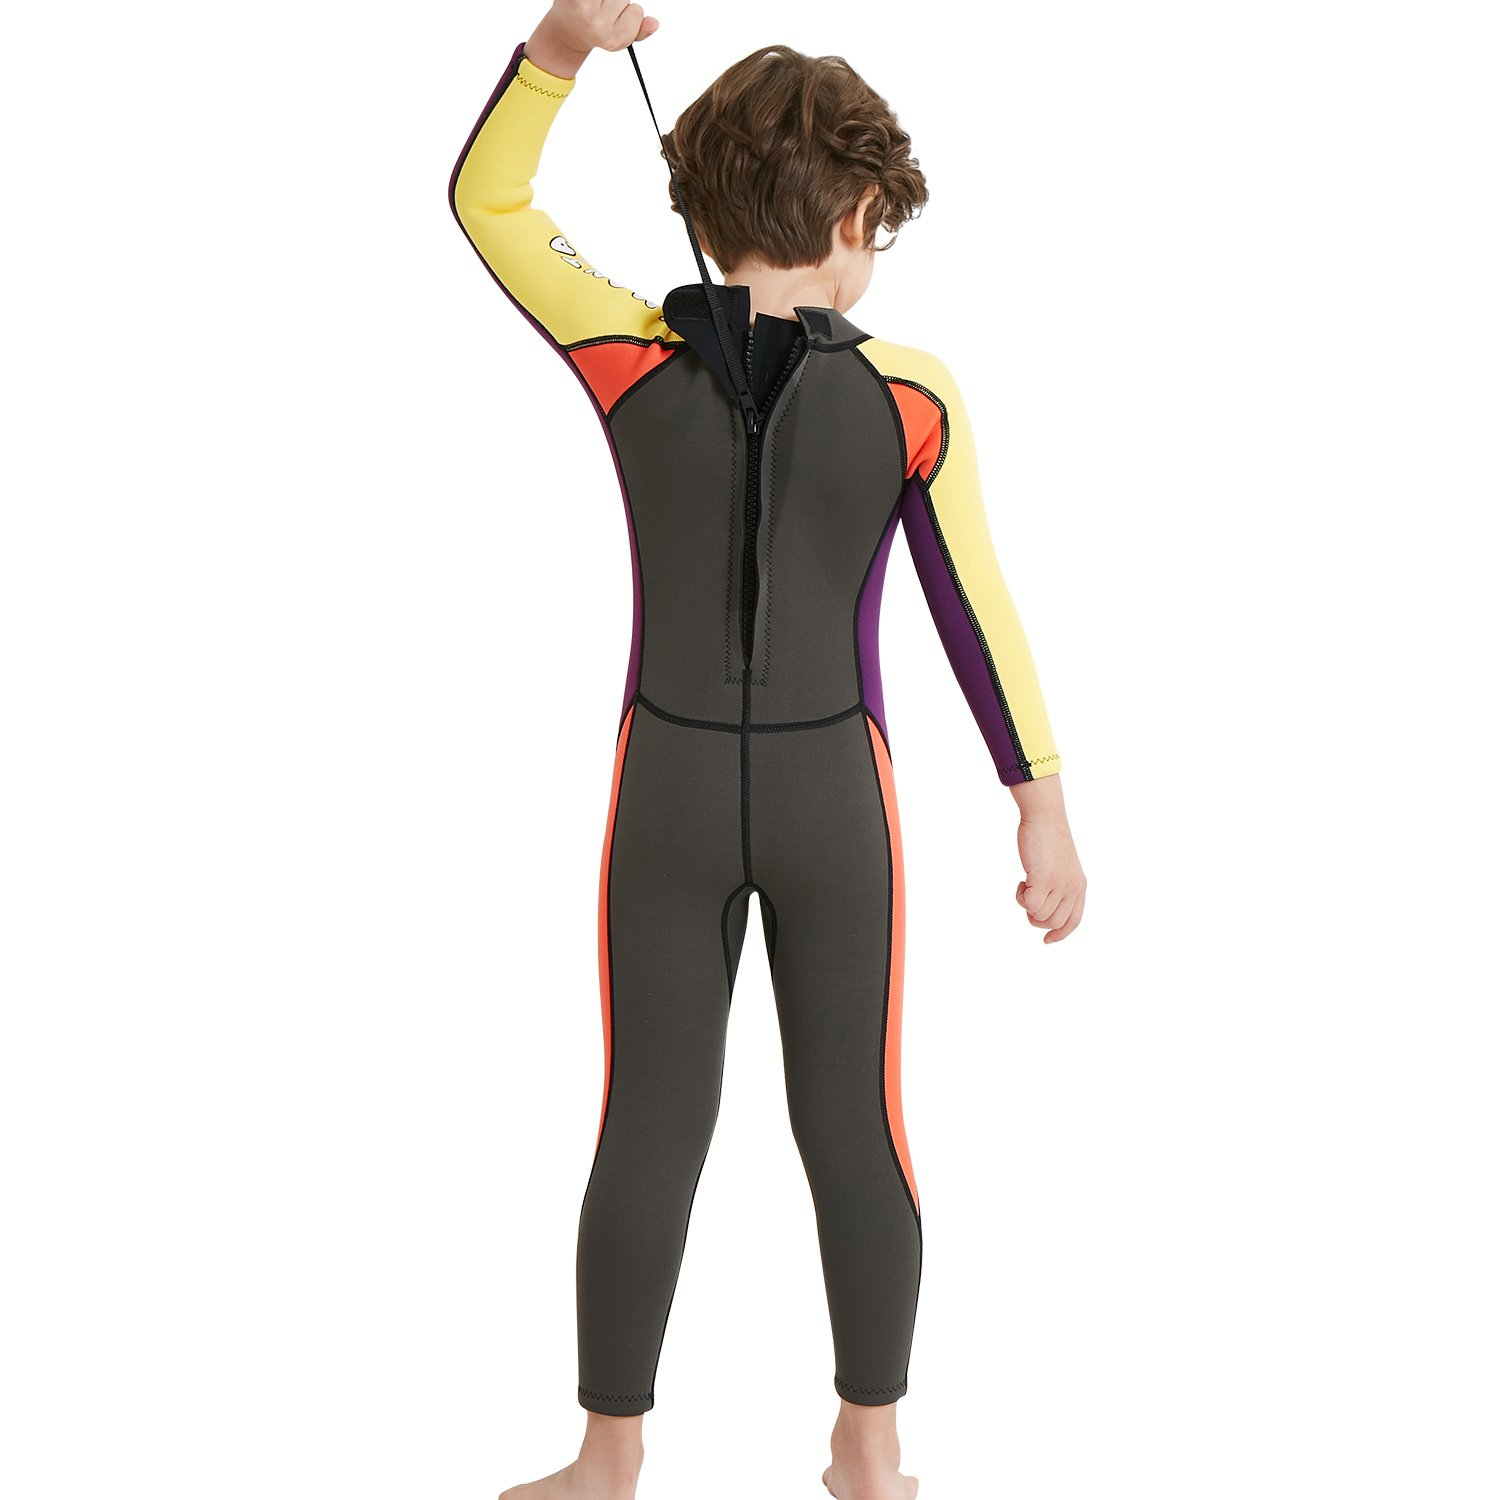 NATYFLY Neoprene Wetsuits for Kids Boys Girls Back Zipper One Piece Swimsuit UV Protection-Brand